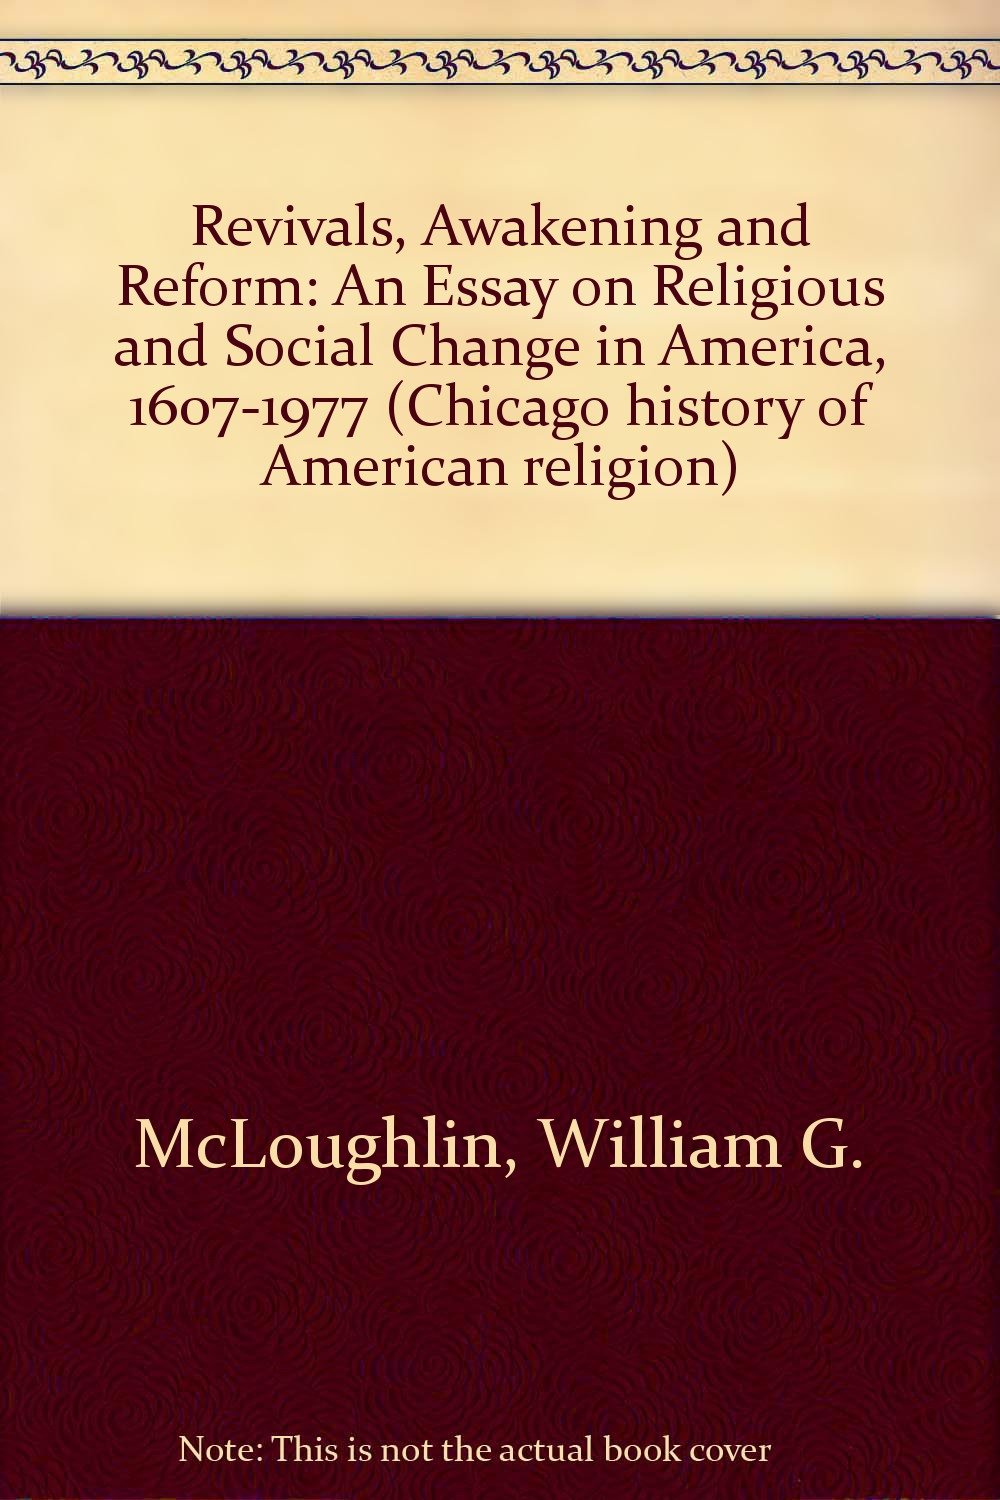 revivals awakening and reform an essay on religious and social revivals awakening and reform an essay on religious and social change in america 1607 1977 william g mcloughlin 9780226560915 amazon com books